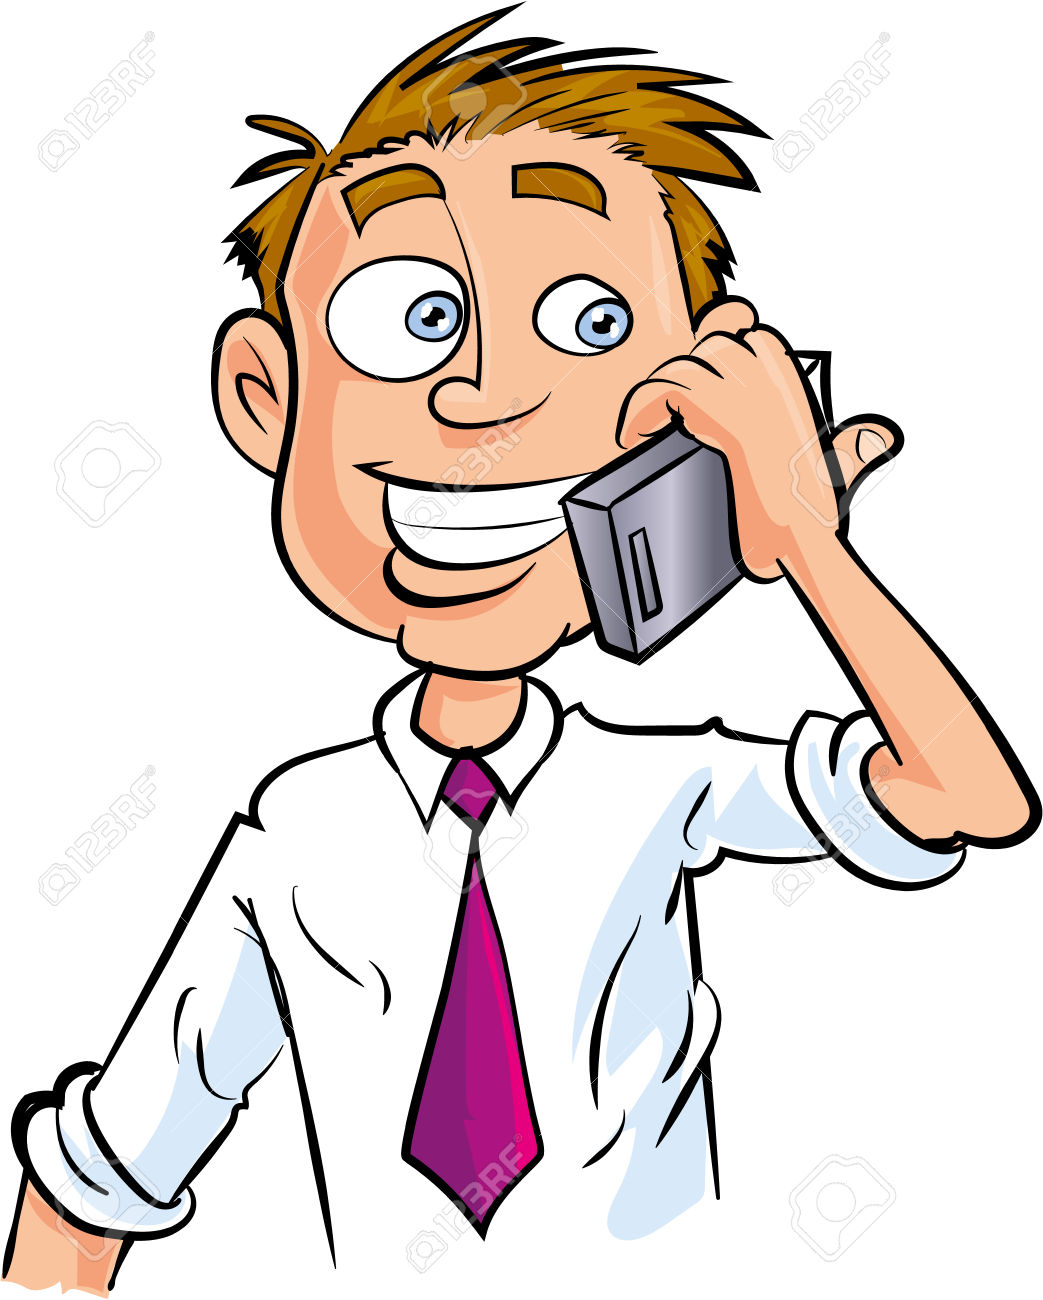 Woman clipart phone call Making Worker Call Isolated Phone